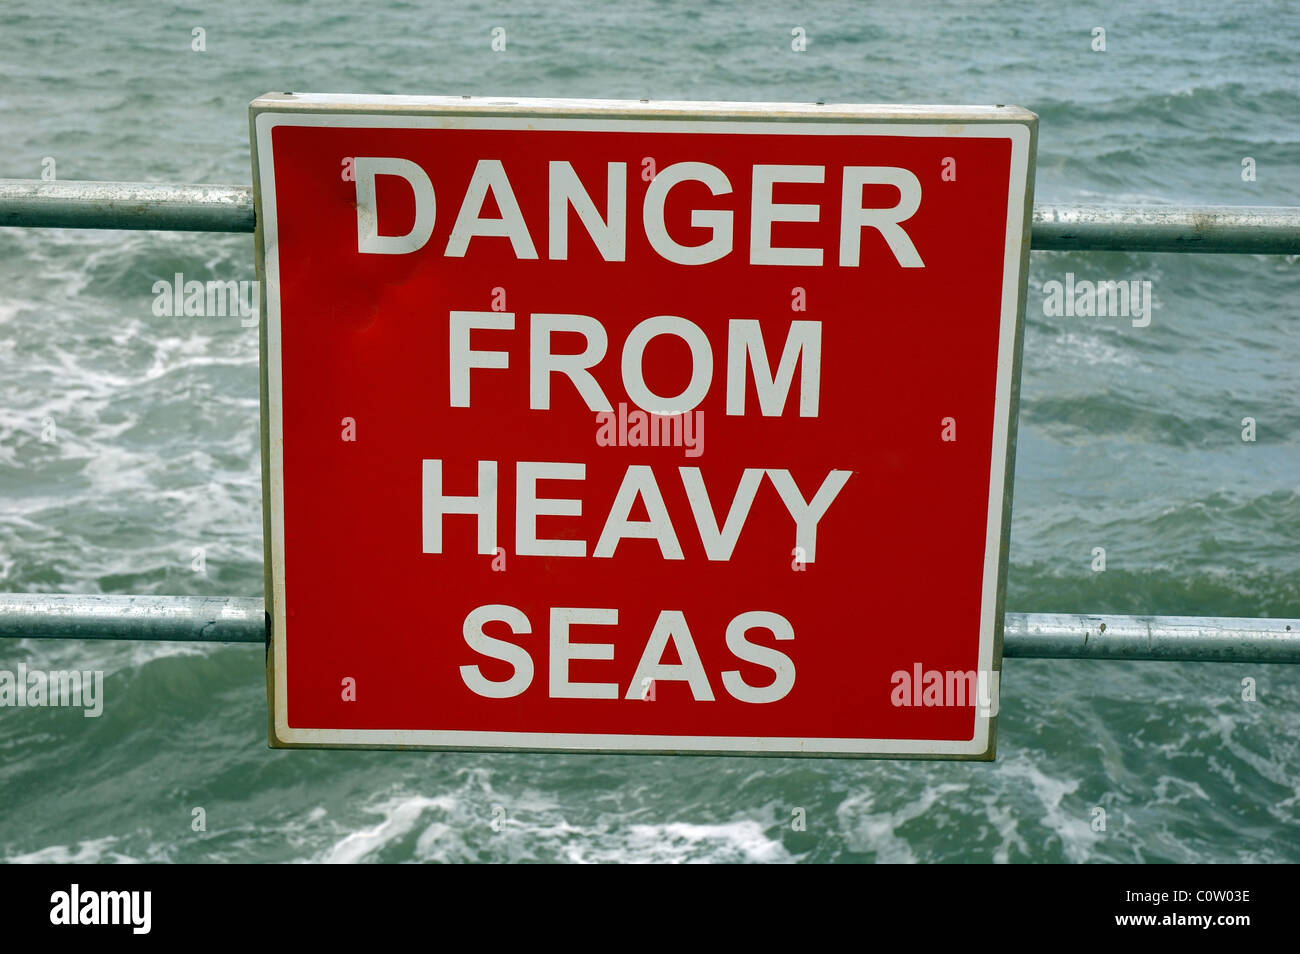 Danger From Heavy Seas sign, Scarborough, North Yorkshire, England, UK - Stock Image